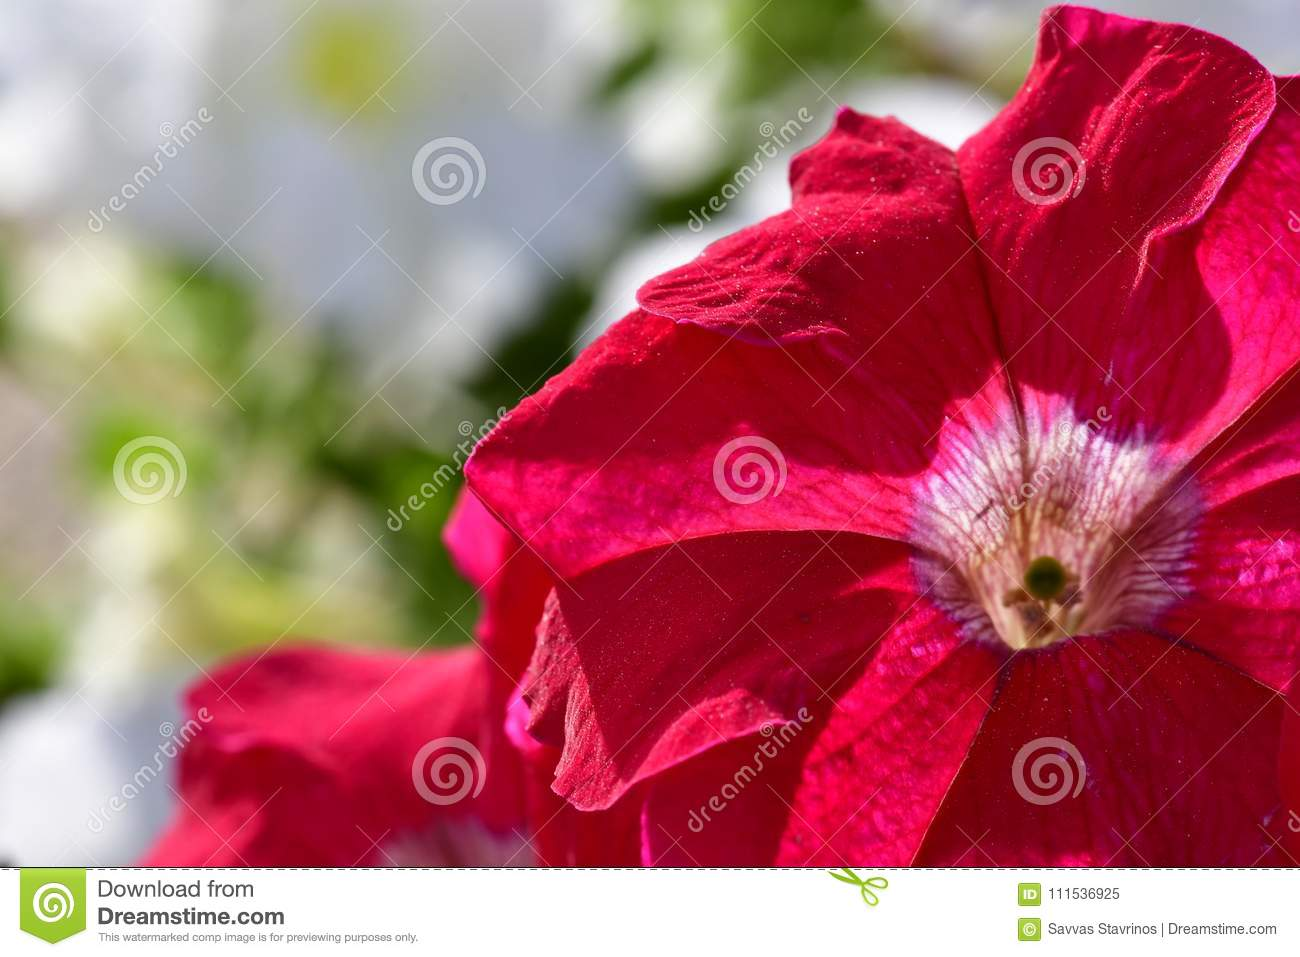 Red Color Of Flowers At Spring Time Stock Image - Image of brings ...